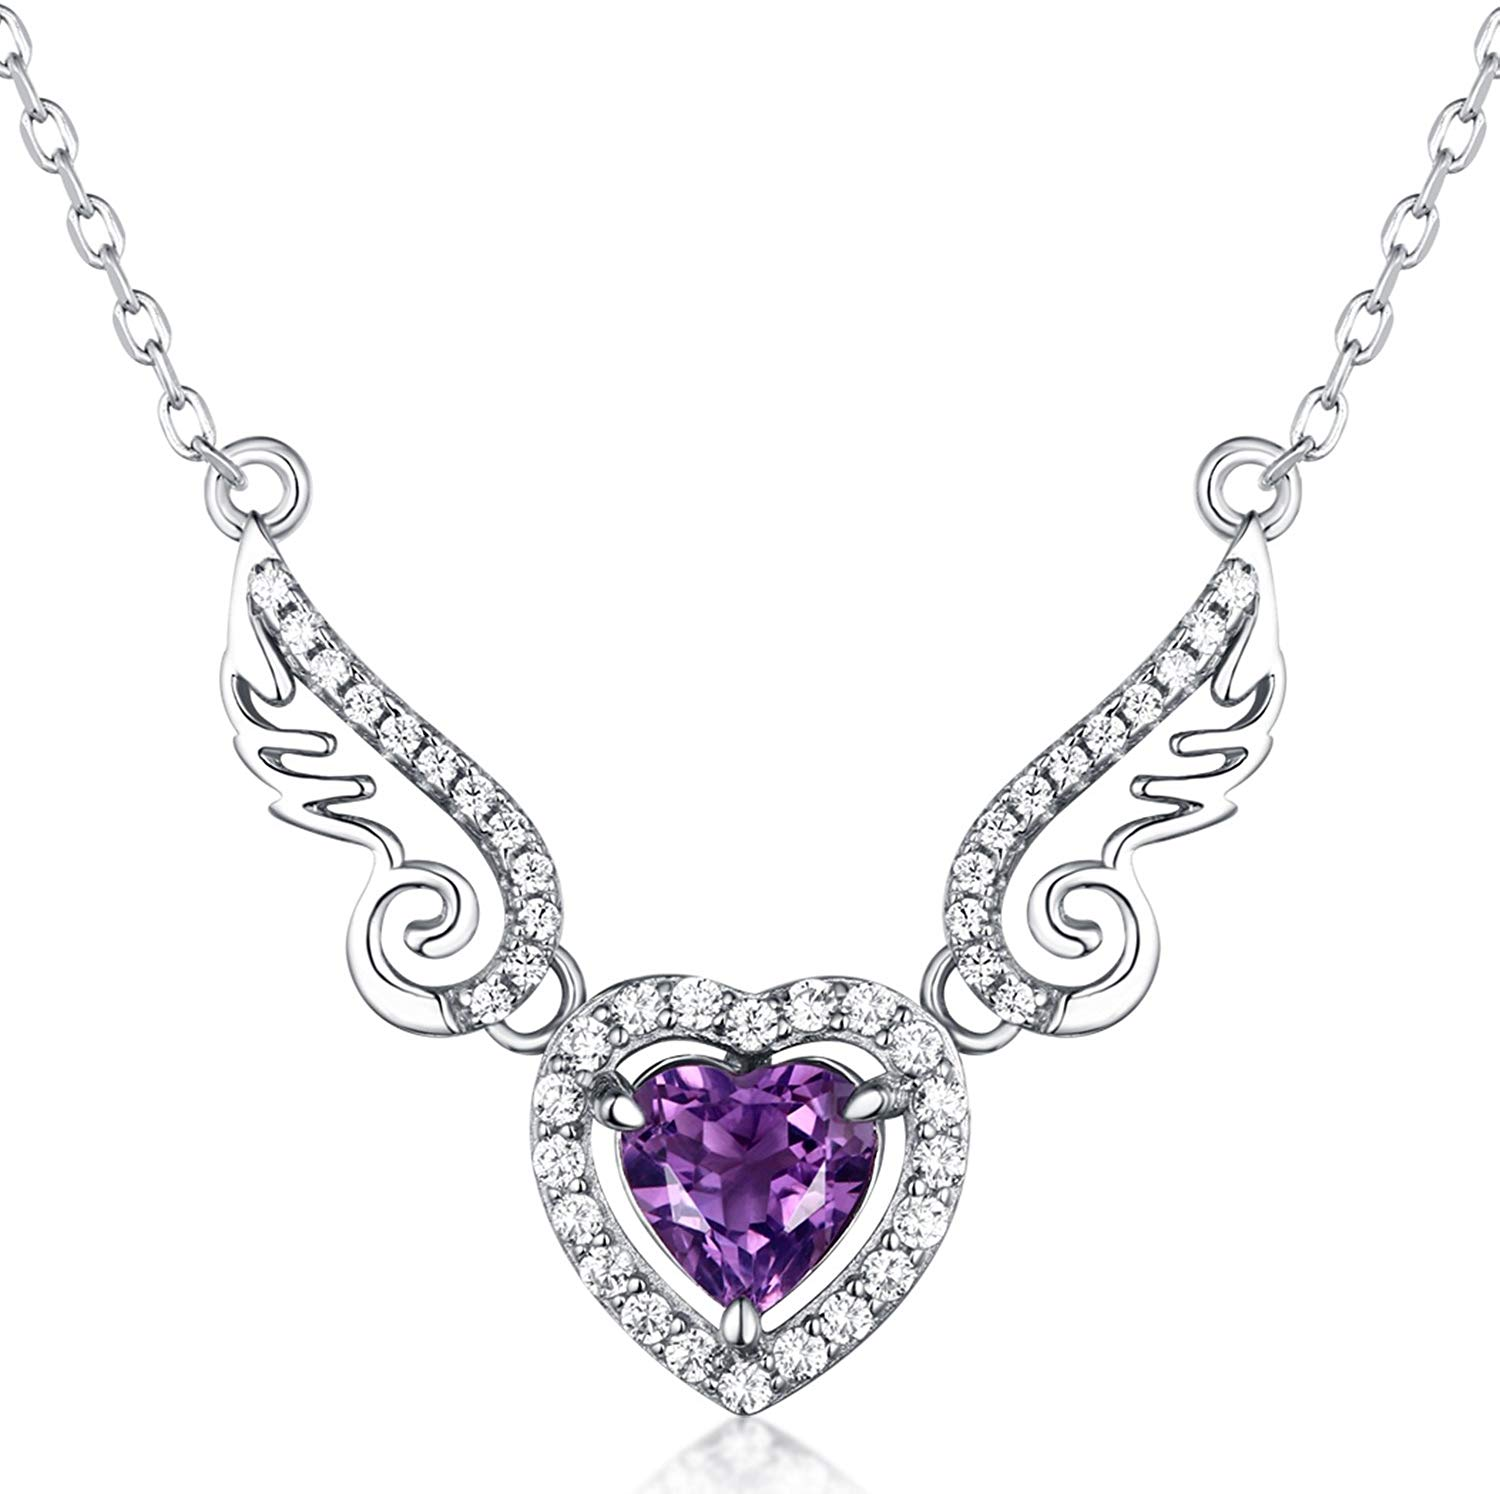 HXZZ Fine Jewelry Women Gifts 925 Sterling Silver Natural Gemstone Swiss Blue Topaz Amethyst Peridot Love Heart Angel Wings Pendant Necklace